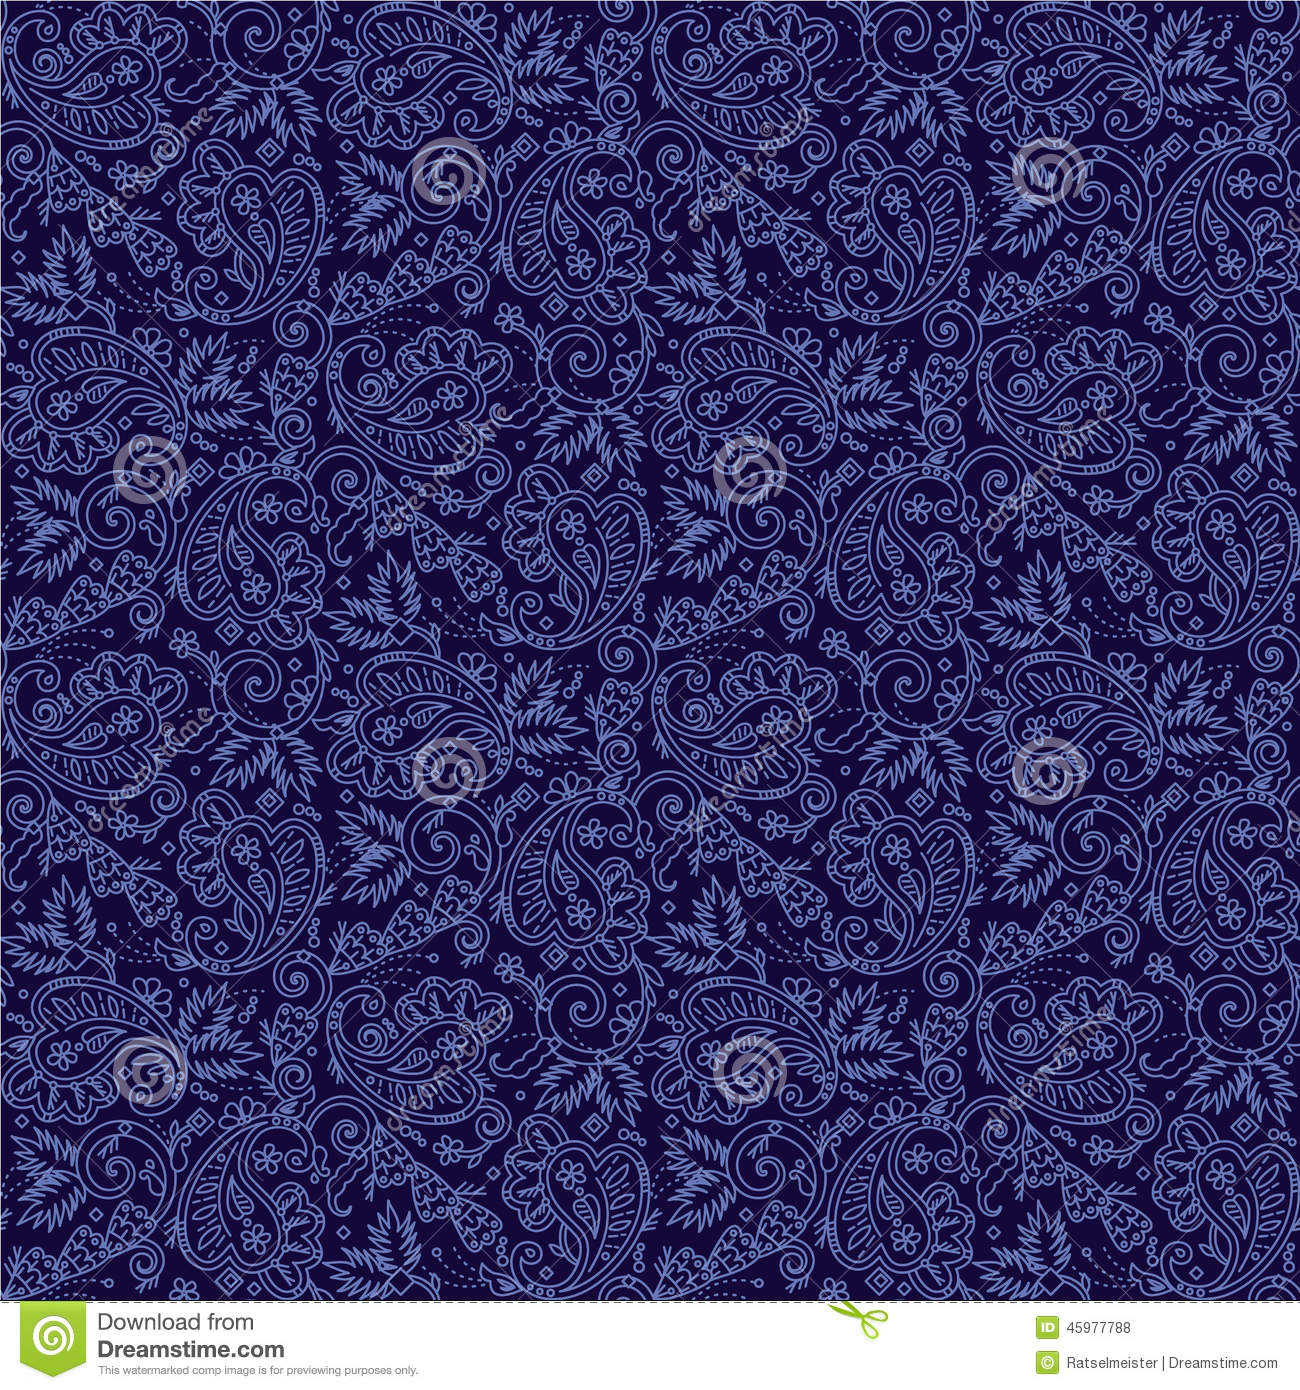 Seamless Paisley Background Stock Vector - Image: 45977788